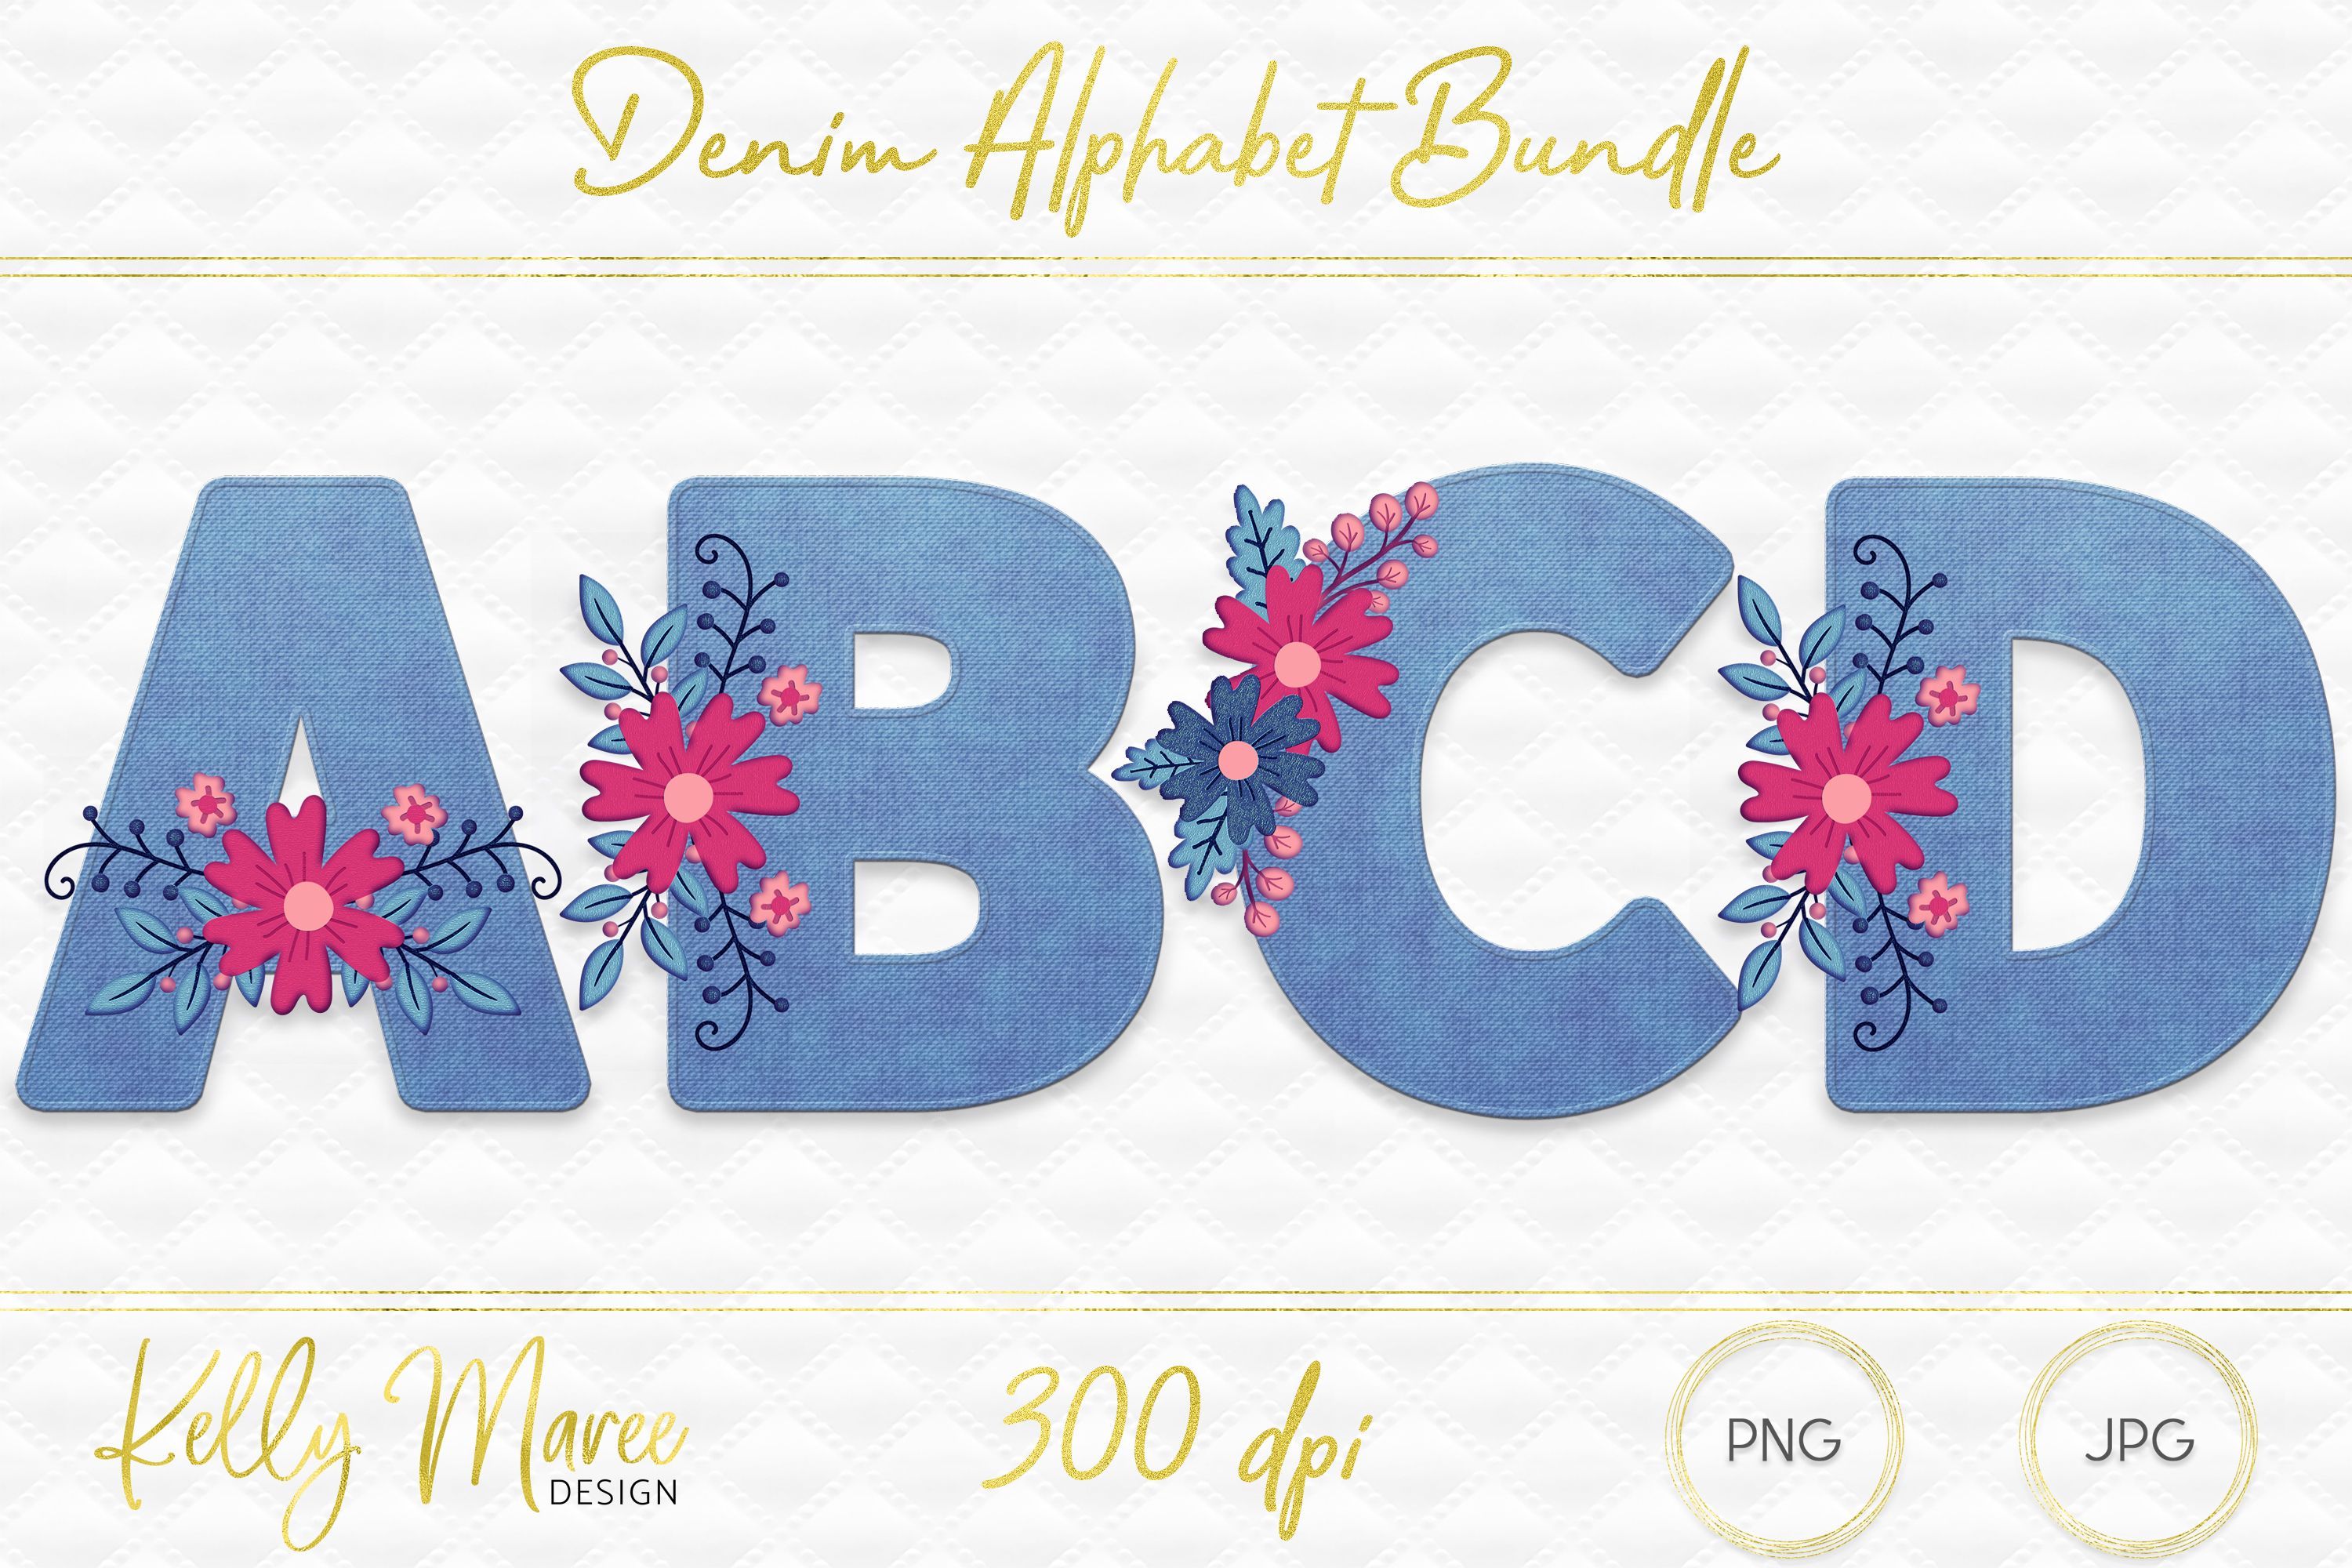 Light Denim & Floral Alphabet Graphic Bundle example image 1